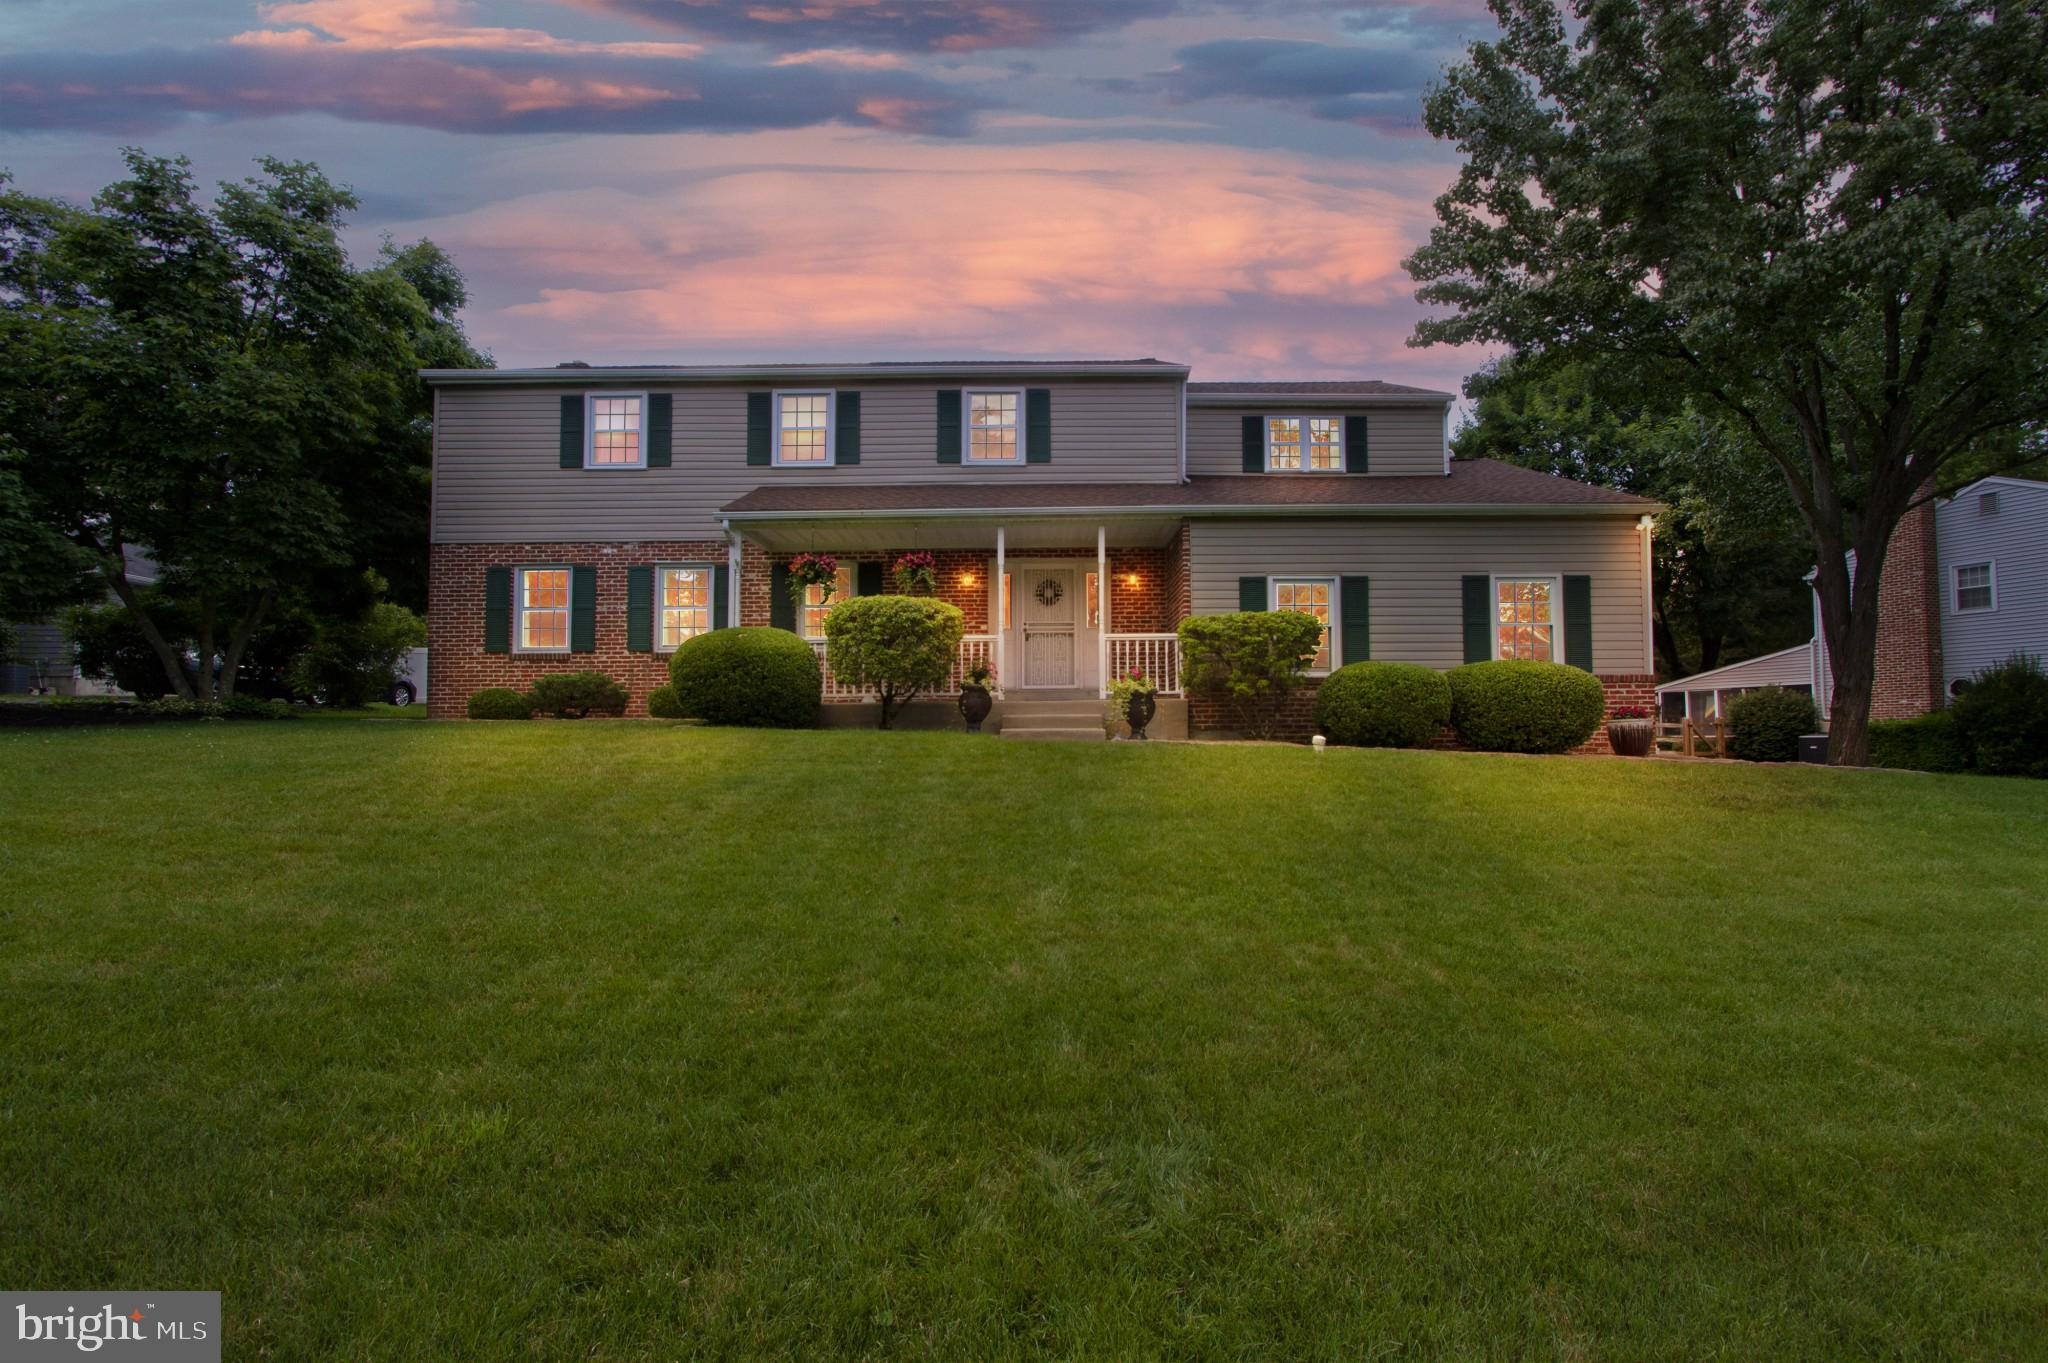 Welcome to this amazing 4-bedroom, 3-bathroom home in West Chester! This wonderful home spans 3,718 sq ft (including a partially finished basement) and is full of ample storage space and well-appointed features throughout. Enter through the front door (which is heavy duty providing great security) directly into the large foyer which includes an abundance of closet and storage space! The main level of the home features beautiful hardwood flooring and crown molding throughout. To the left, there is a spacious living room with 2 large windows to let in lots of great natural light! The huge dining room includes a gorgeous gas-burning fireplace with mantel surrounded by lots of built-in shelving and cabinets lining the entire wall. The large, open kitchen boasts modern stainless steel appliances, Corian countertops, a central island with quartz countertop, a built-in pantry, and decorative tilework above the stove. There is even a spacious eating area right off of the kitchen! The bright and sunny family room is incredibly large, with high vaulted ceilings, plush wall-to-wall carpeting, recessed lighting, and ceiling fan. Rounding out the main level of the home is a laundry room and convenient half bath. Heading upstairs, you will find 2 primary bedrooms as well as 2 additional bedrooms (3 bedrooms have ceiling fans and all have abundant closet space!). The first primary bedroom features two walk-in closets and ensuite bathroom with large double vanity, beautiful tile backsplash, and glass-enclosed stall shower. The second primary bedroom also includes an ensuite bathroom with stall shower. Completing the upper level is an additional full bathroom off of the hallway with tub/shower combo. The lower level of the home is fantastic with plenty of space for indoor recreation! The unfinished side of the basement contains lots of great built-in shelving for convenient storage, and there is a crawl space for storage as well. Rounding out the lower level is another convenient ha